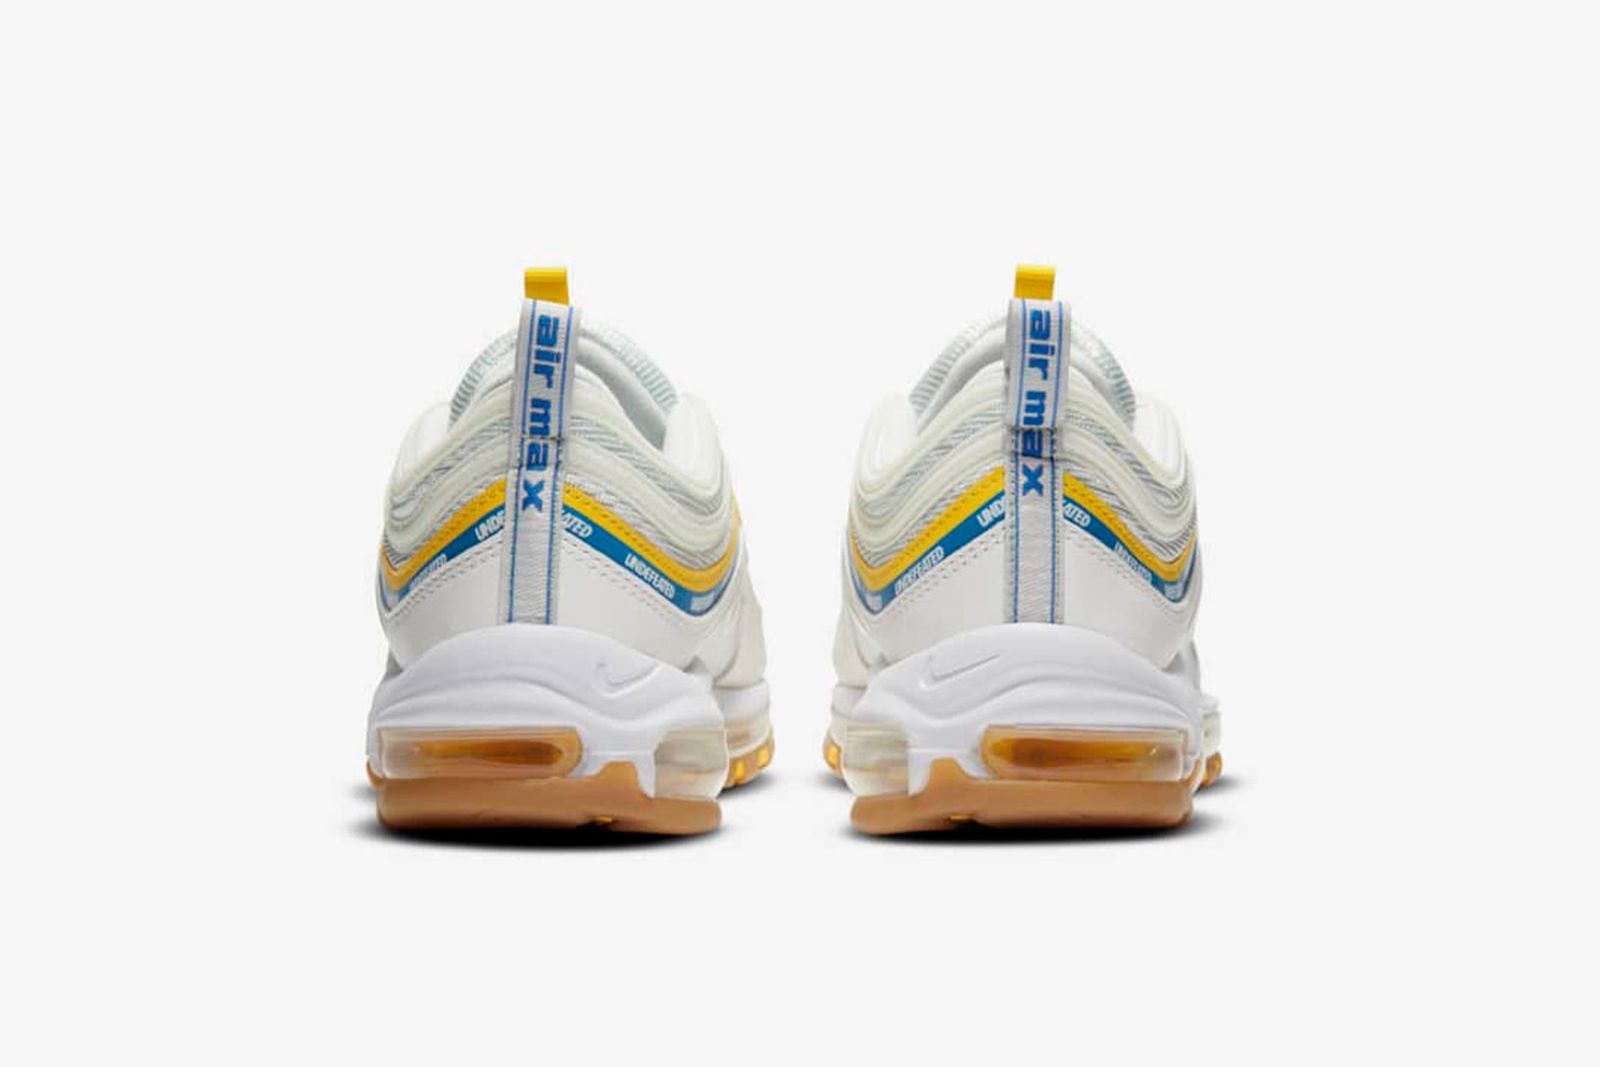 undefeated-nike-air-max-97-ucla-release-date-price-05